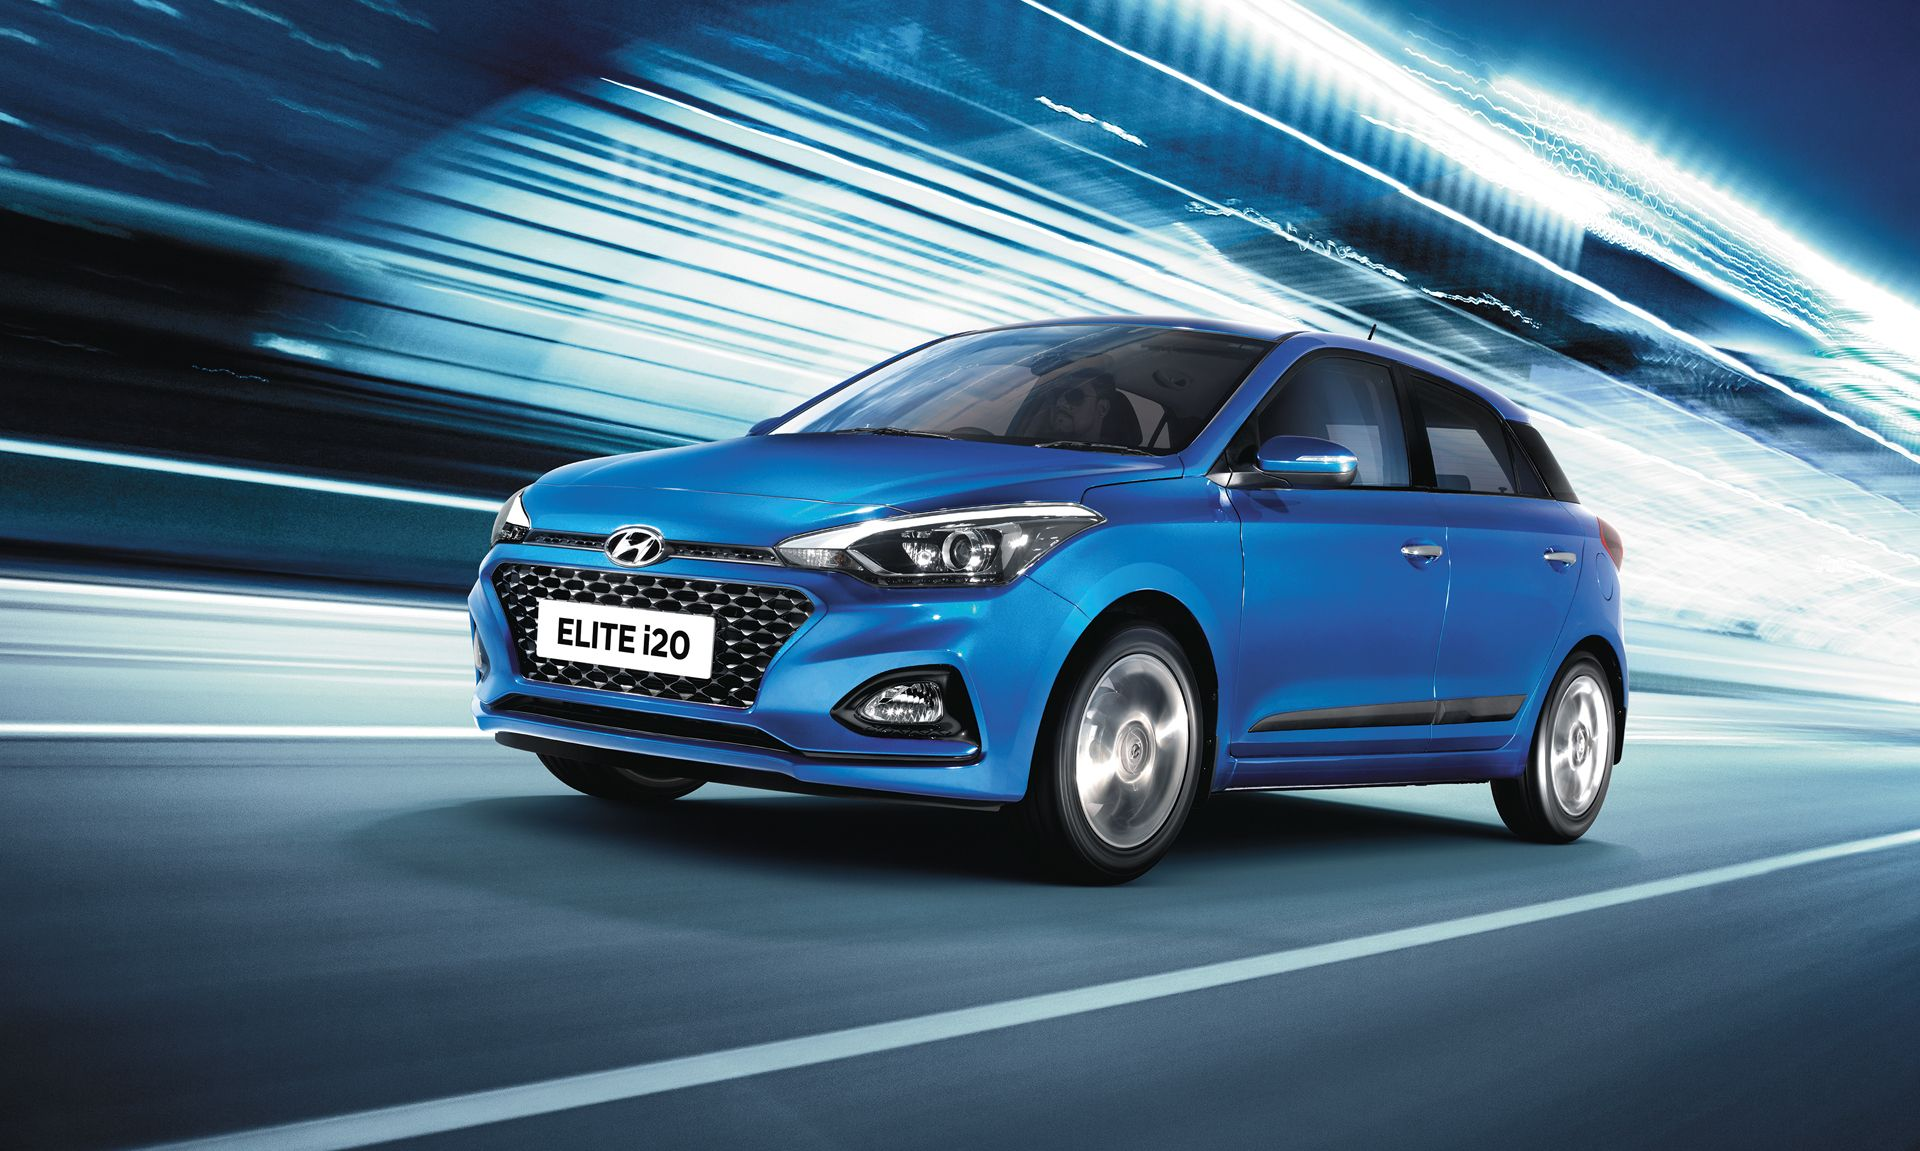 The New 2018 Hyundai Elite I20 Car Dealer Mumbai, Thane   Shreenath Hyundai